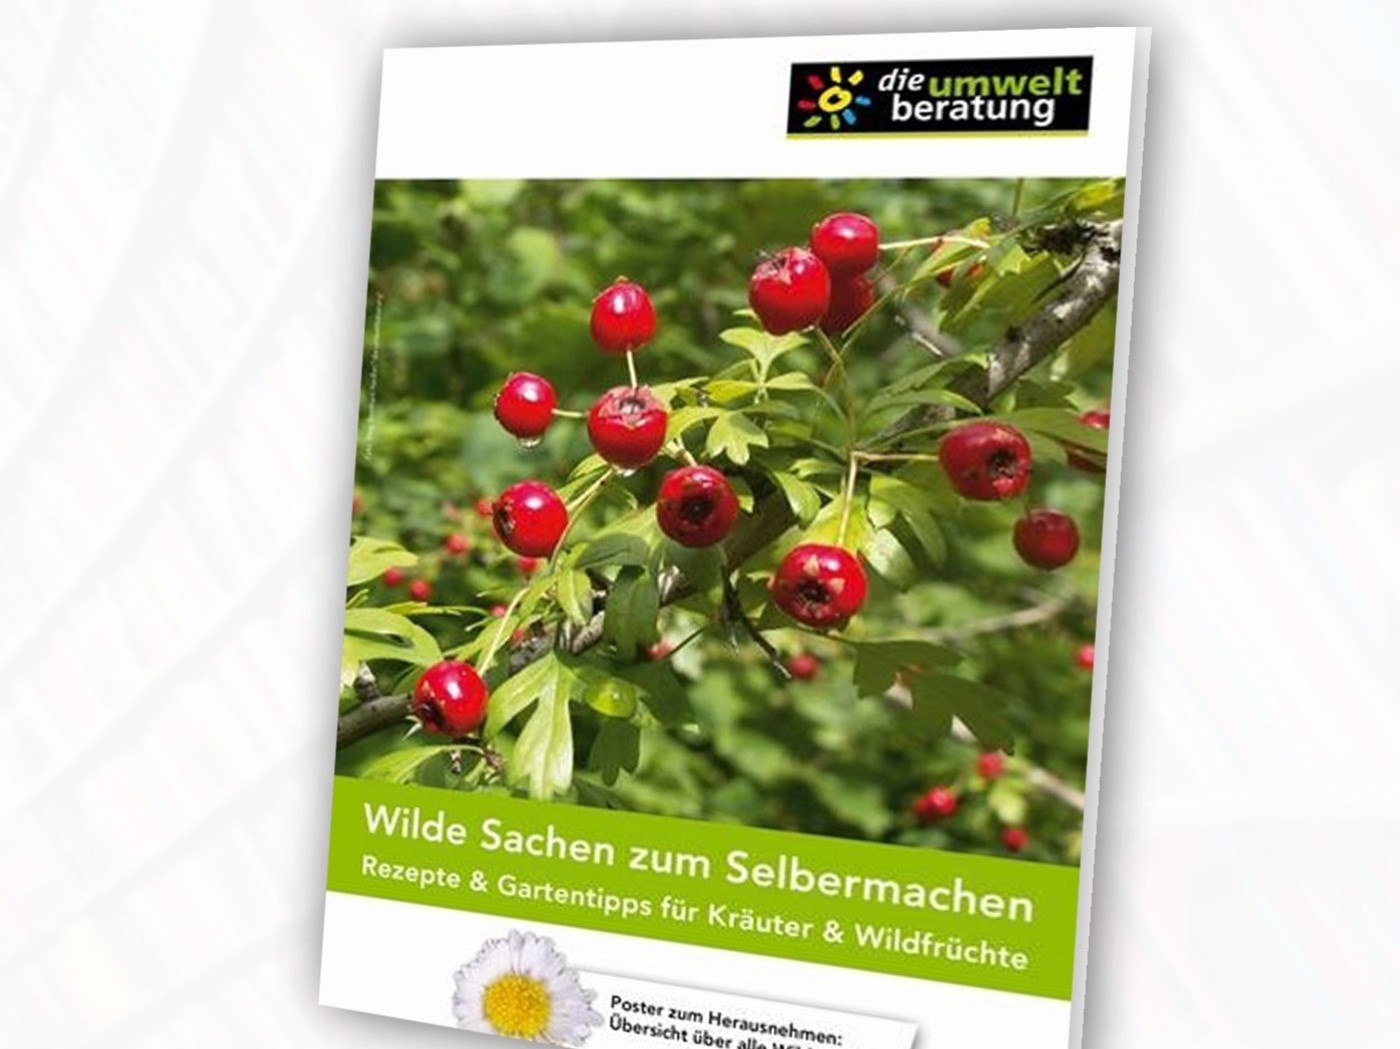 WildeSachen-cover-web